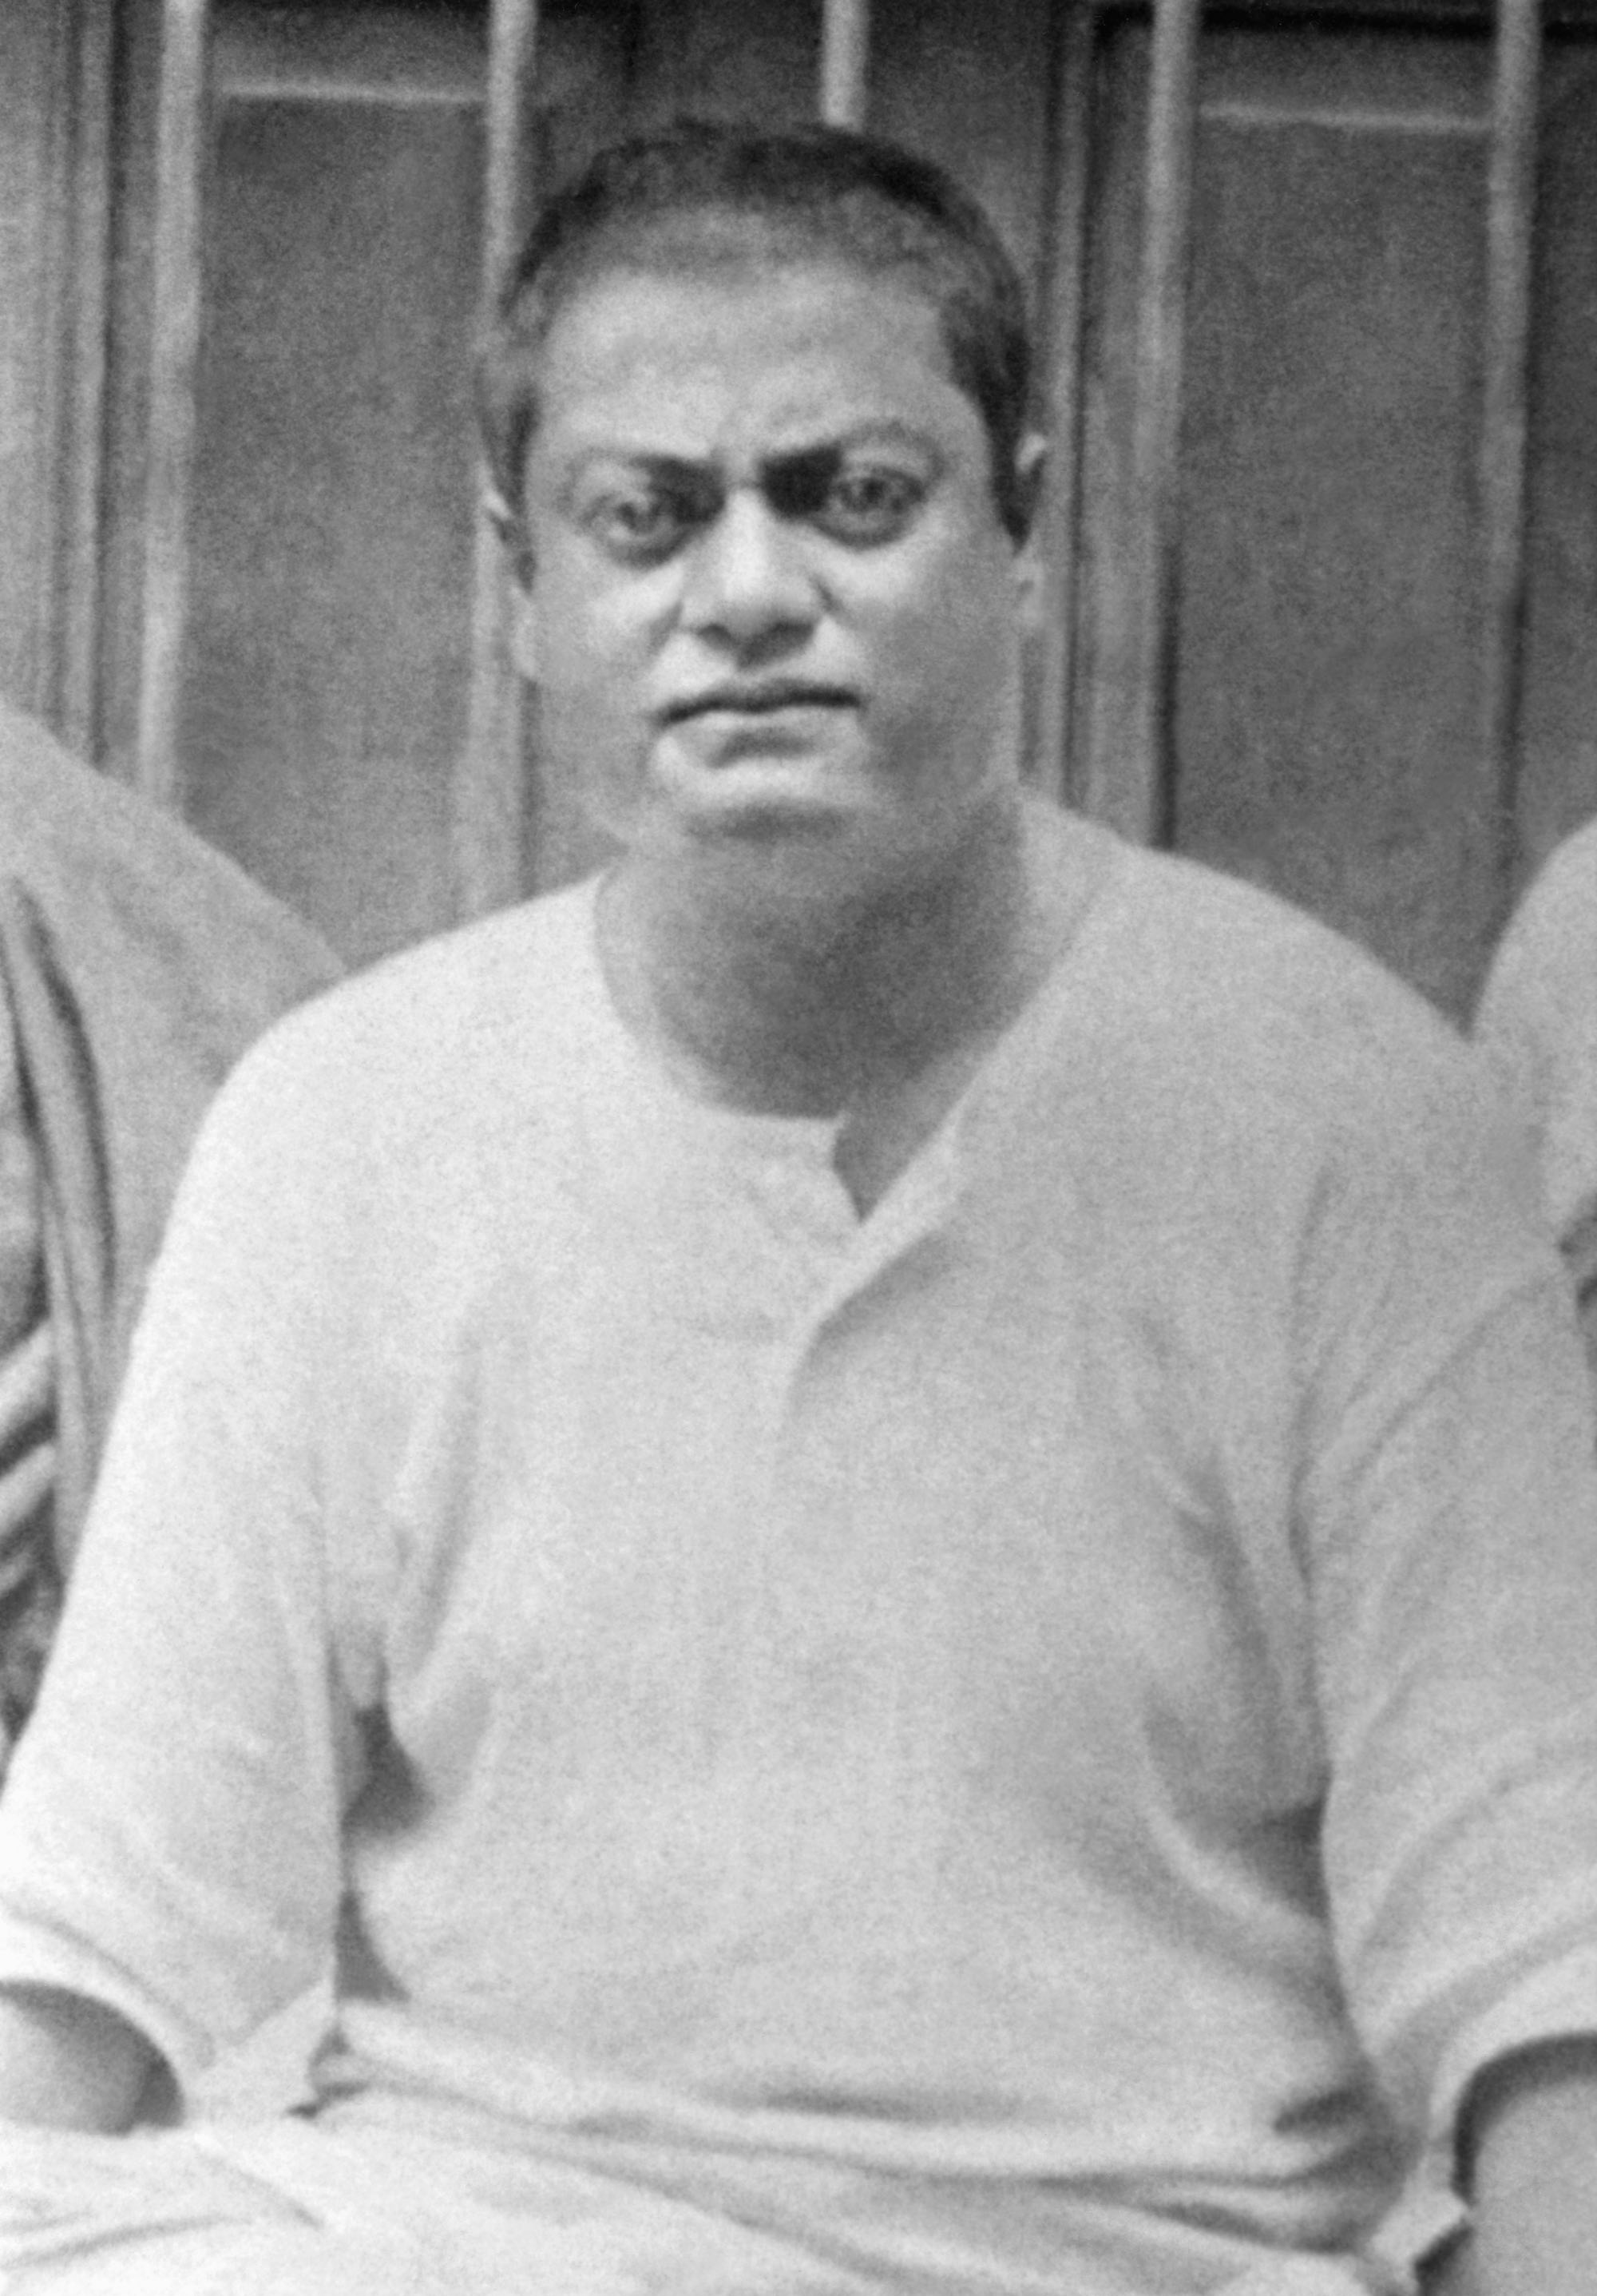 (#76) Crop of Swamiji from photo #75.